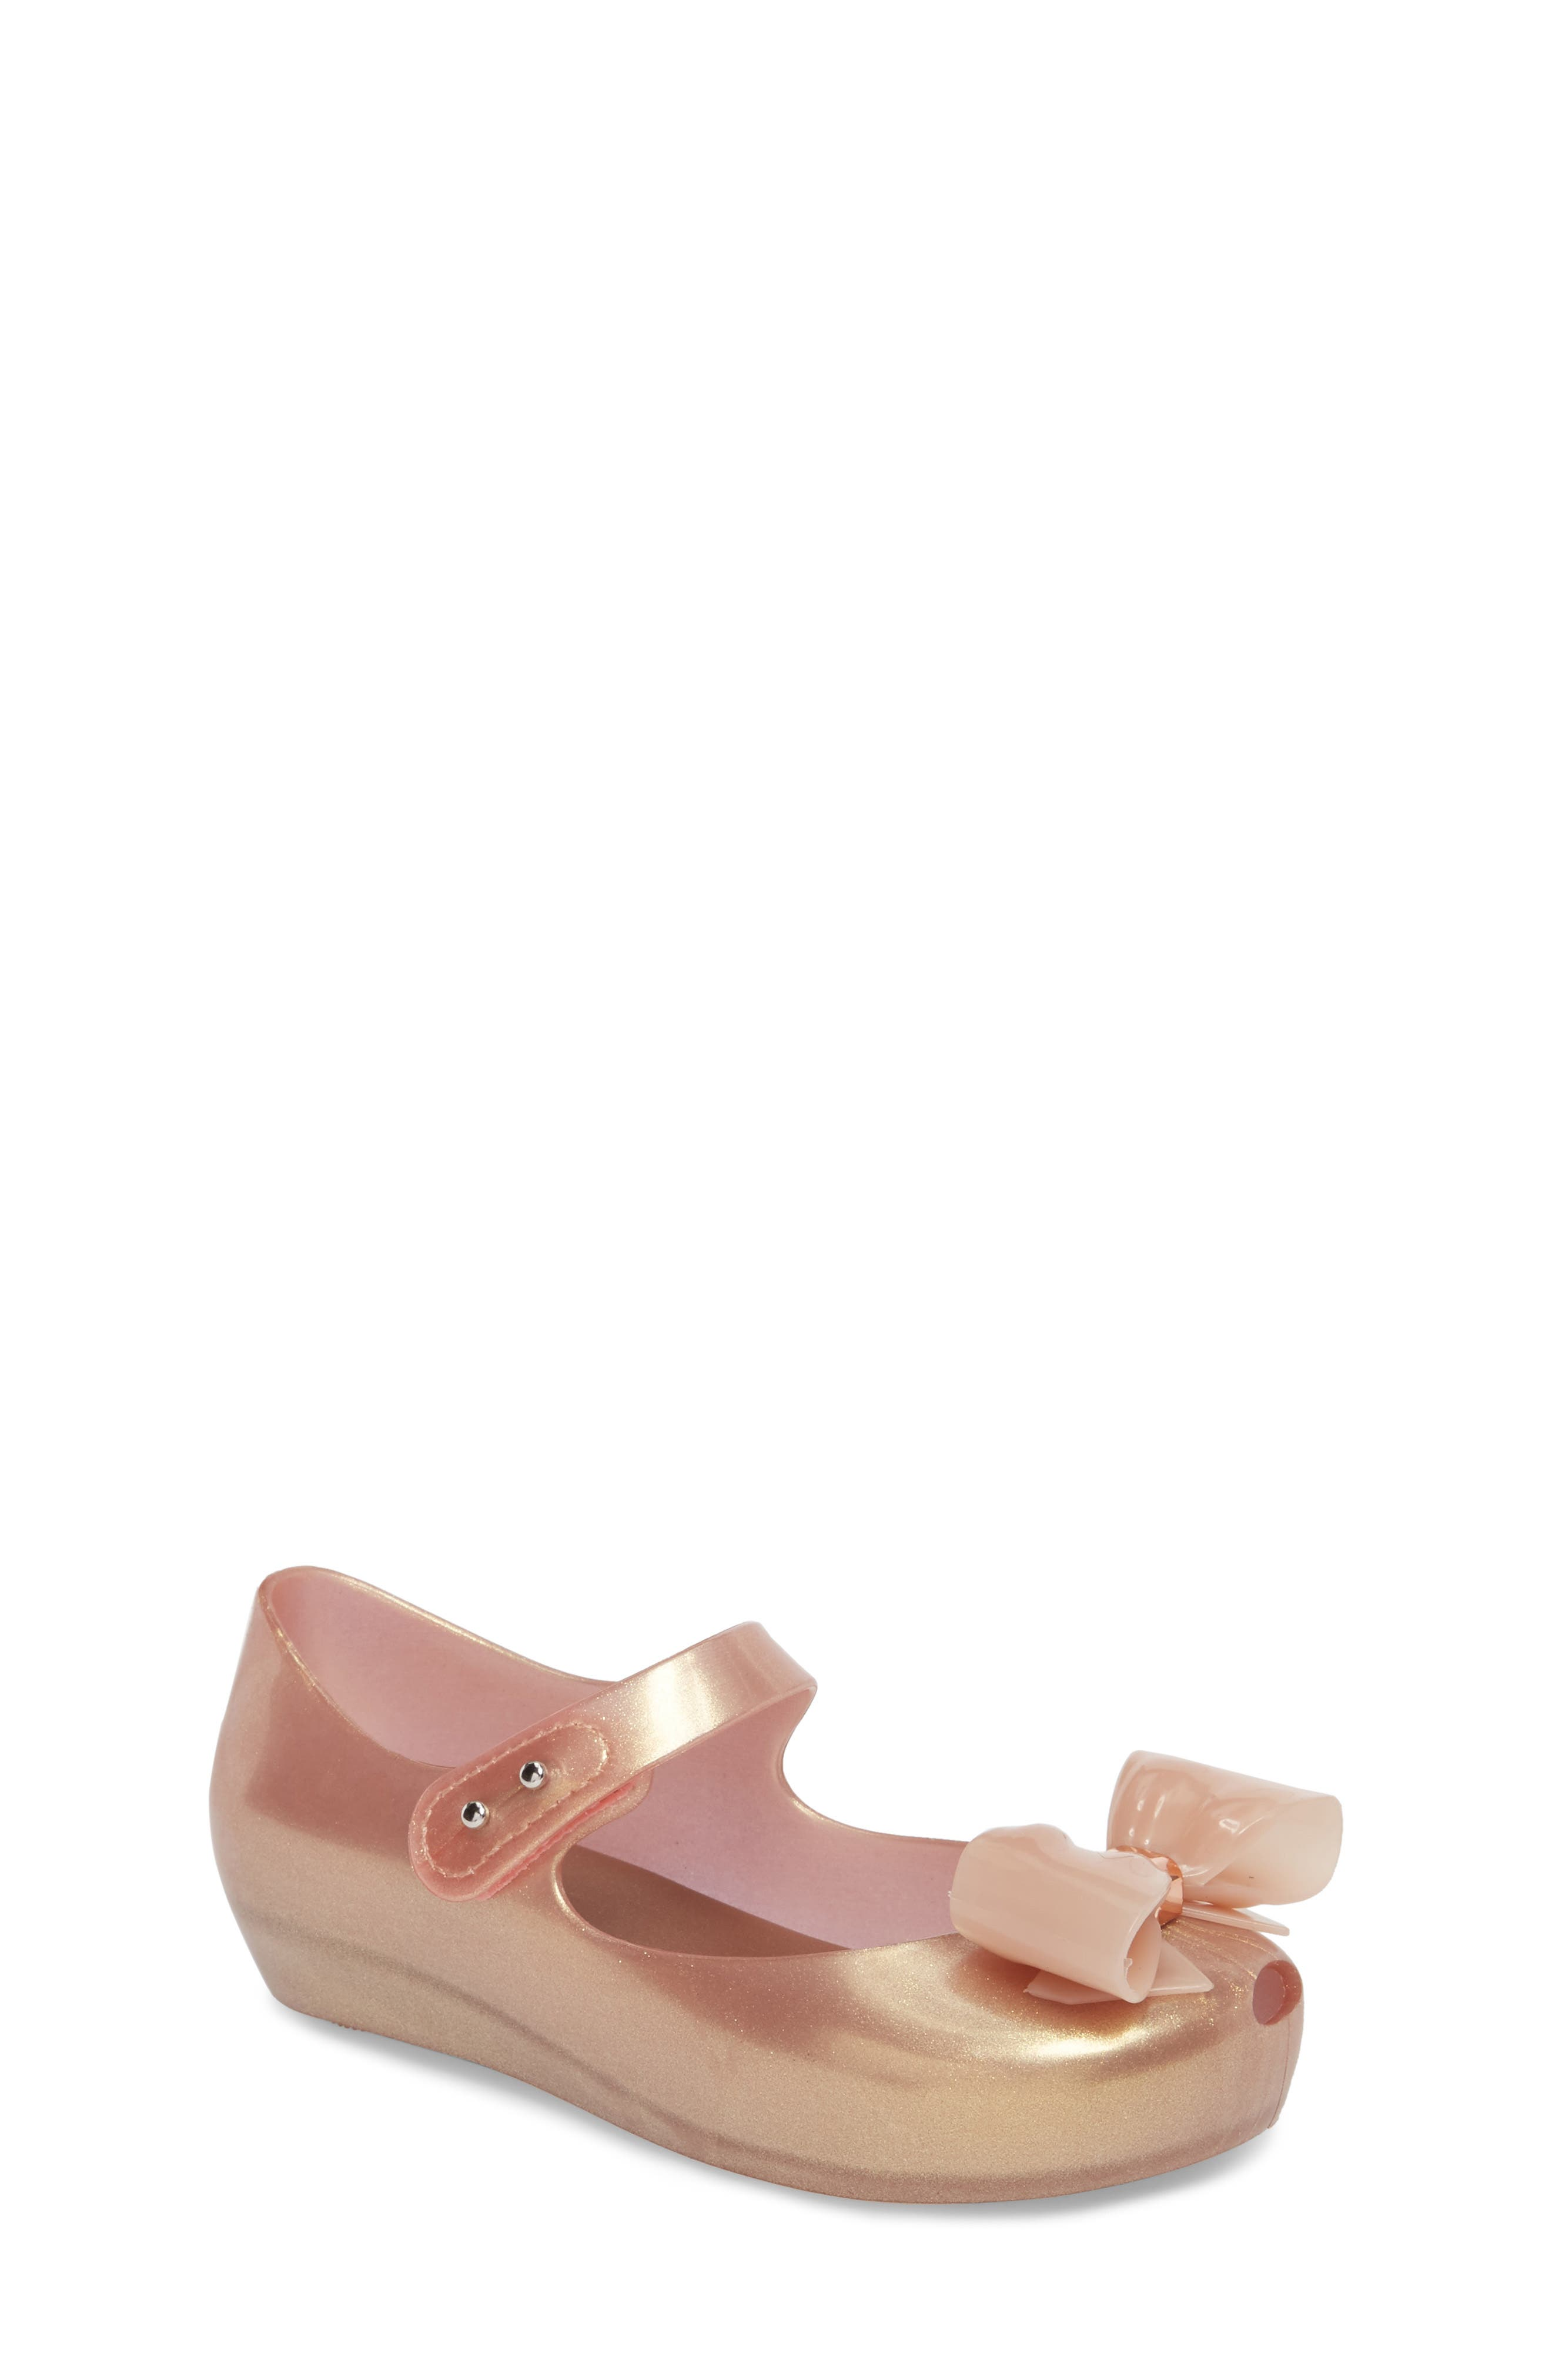 Ultragirl VIII Mary Jane Flat,                             Main thumbnail 1, color,                             METALLIC PINK